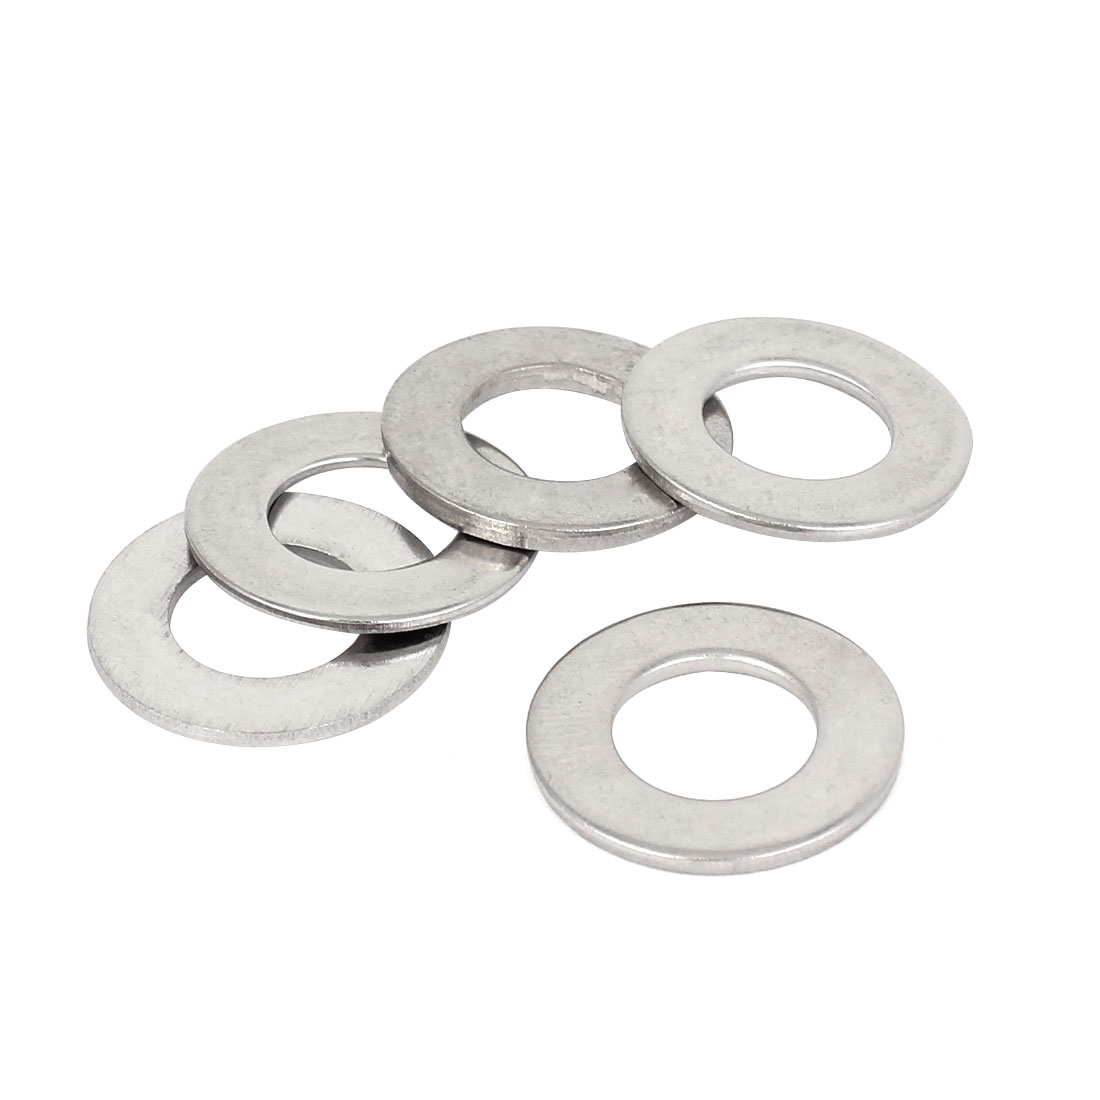 5 Pcs 304 Stainless Steel Flat Washer M10 x 20mm x 1.5mm for Screws Bolts